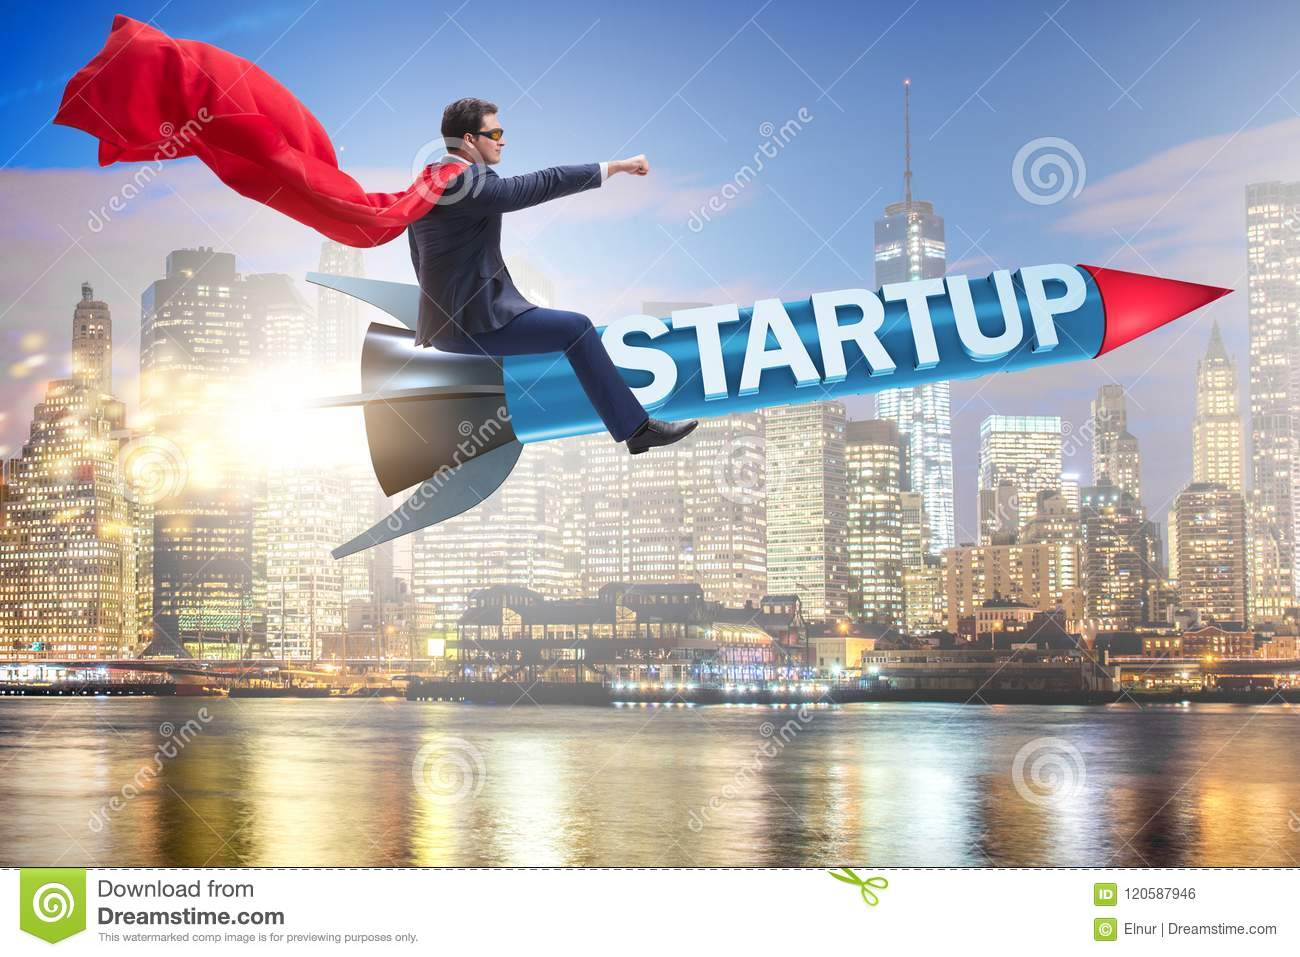 The superhero businessman in start-up concept flying rocket